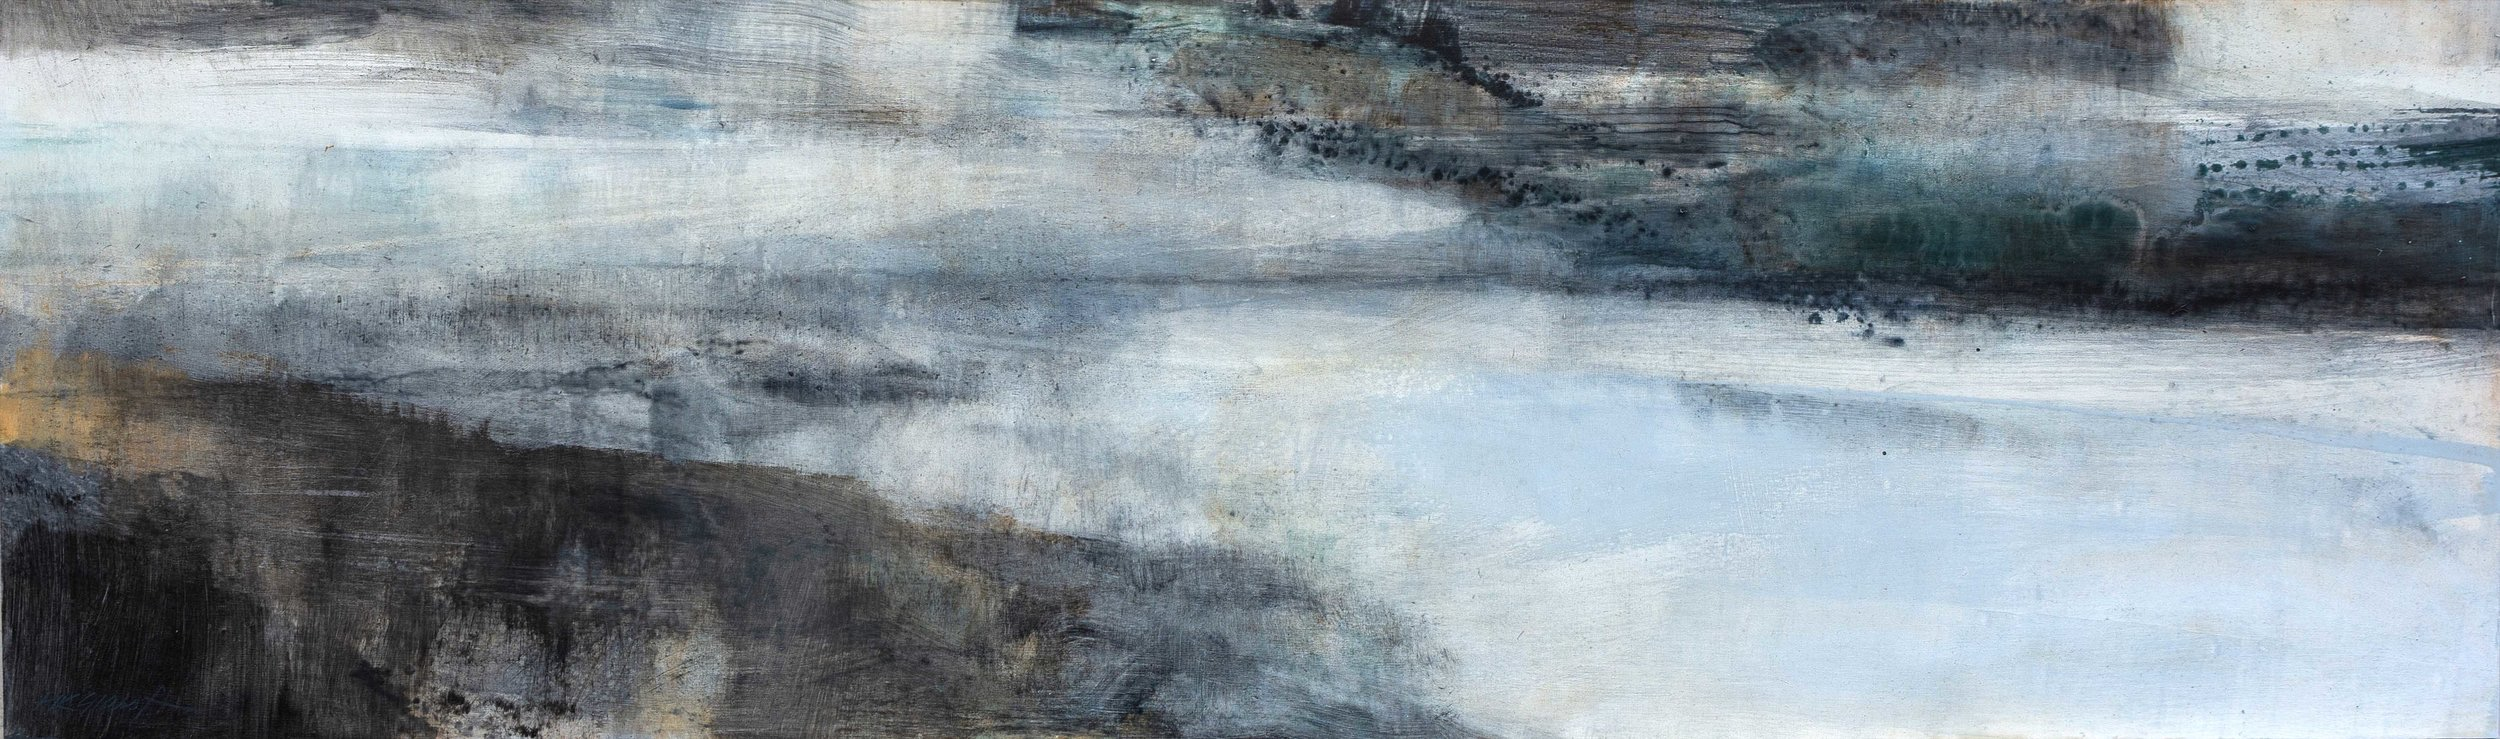 Chance or Fortune • Oil on Board • 38x122cm • Sold